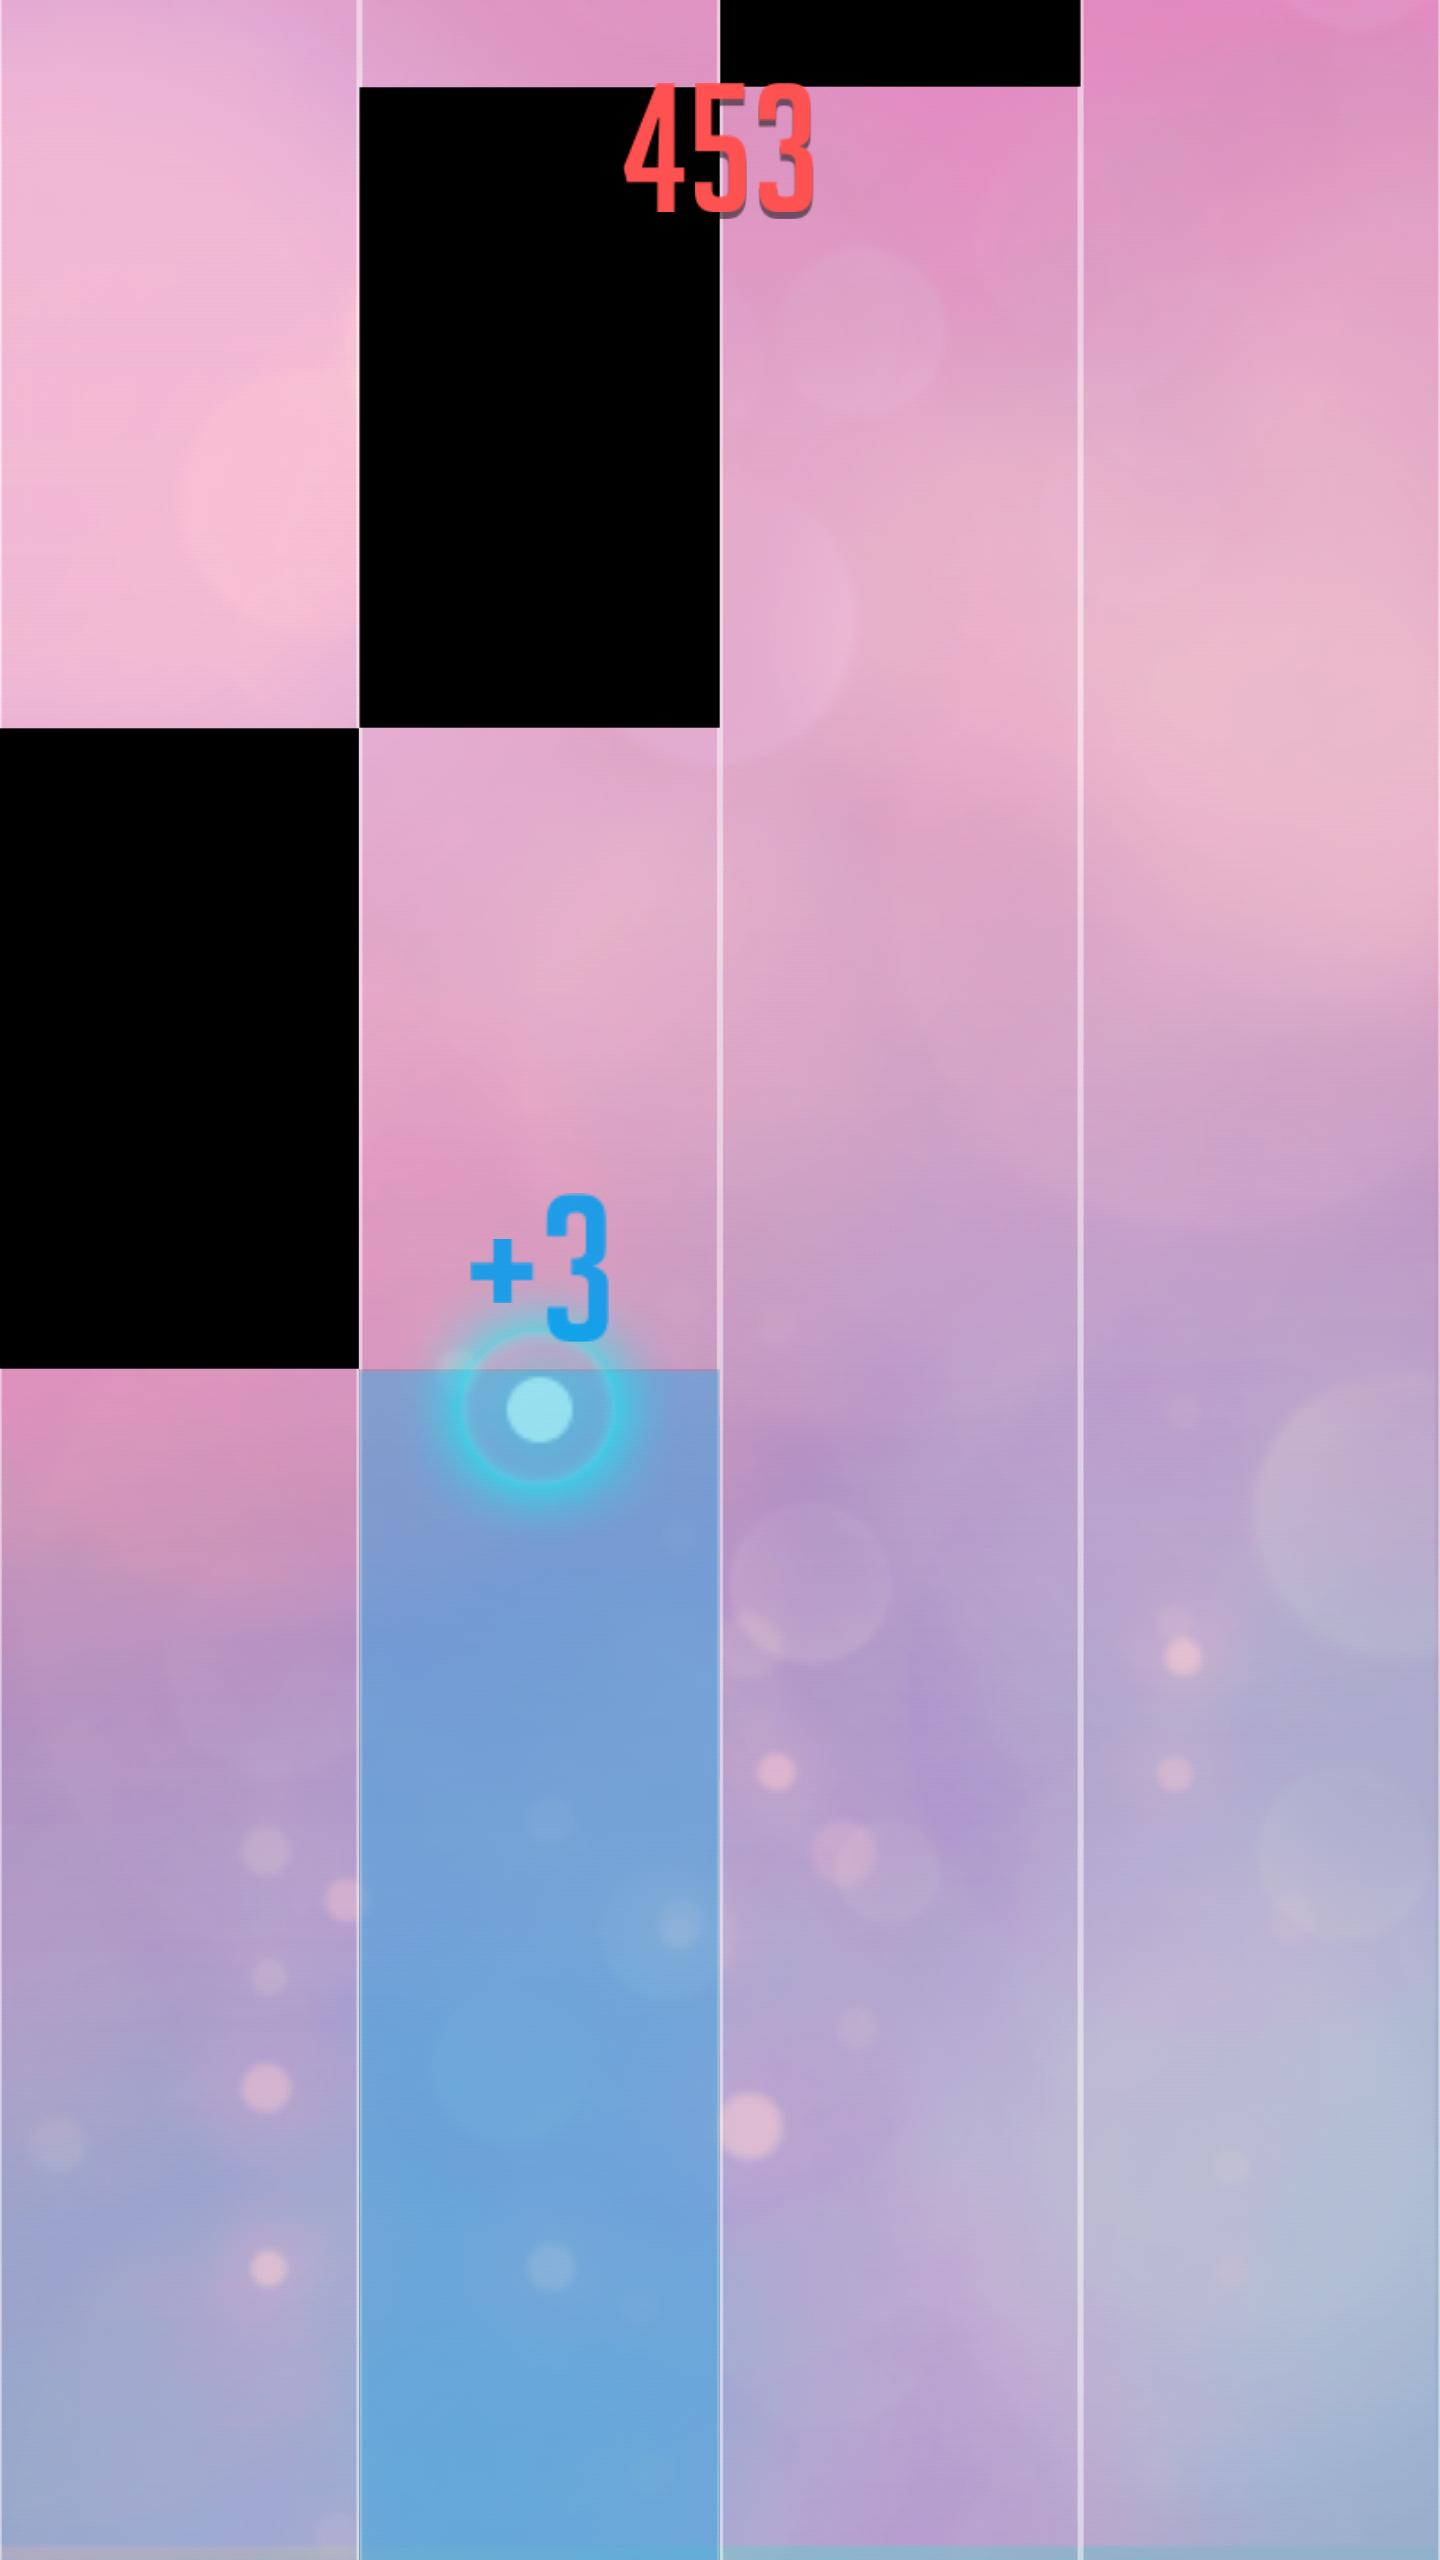 Piano Tiles 2 for Android APK Download